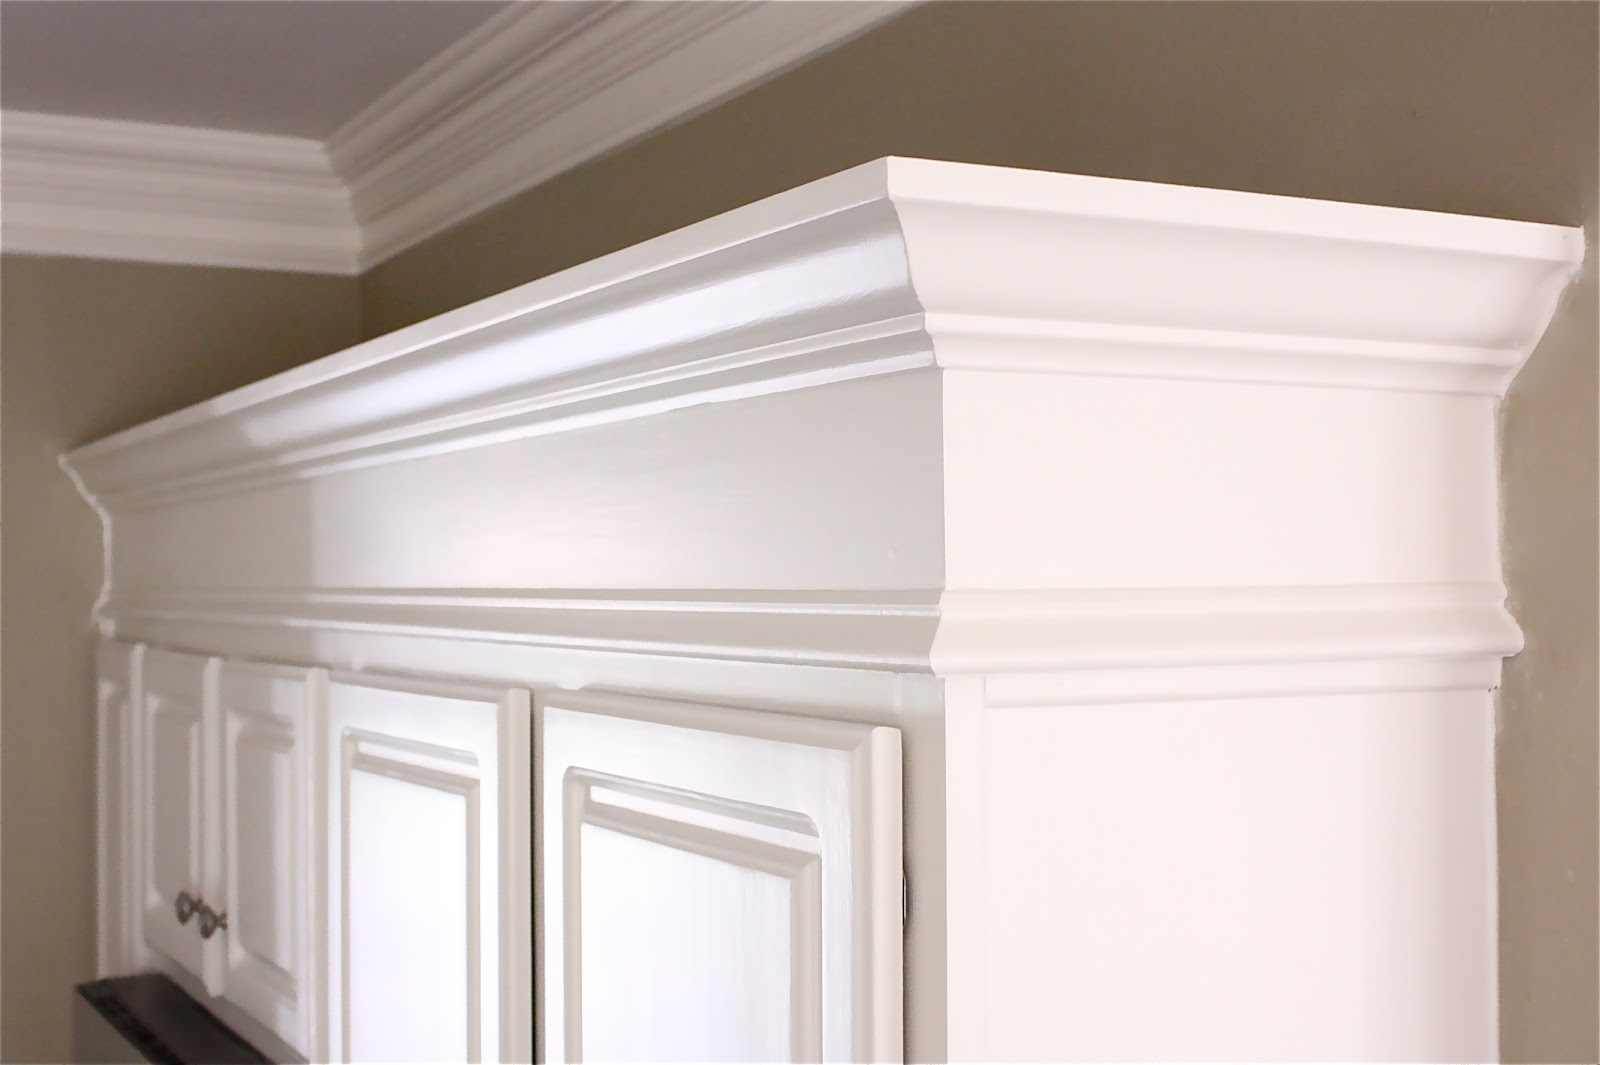 Charming Making Cabinets Taller {Builder Cabinets Go Custom With Molding}